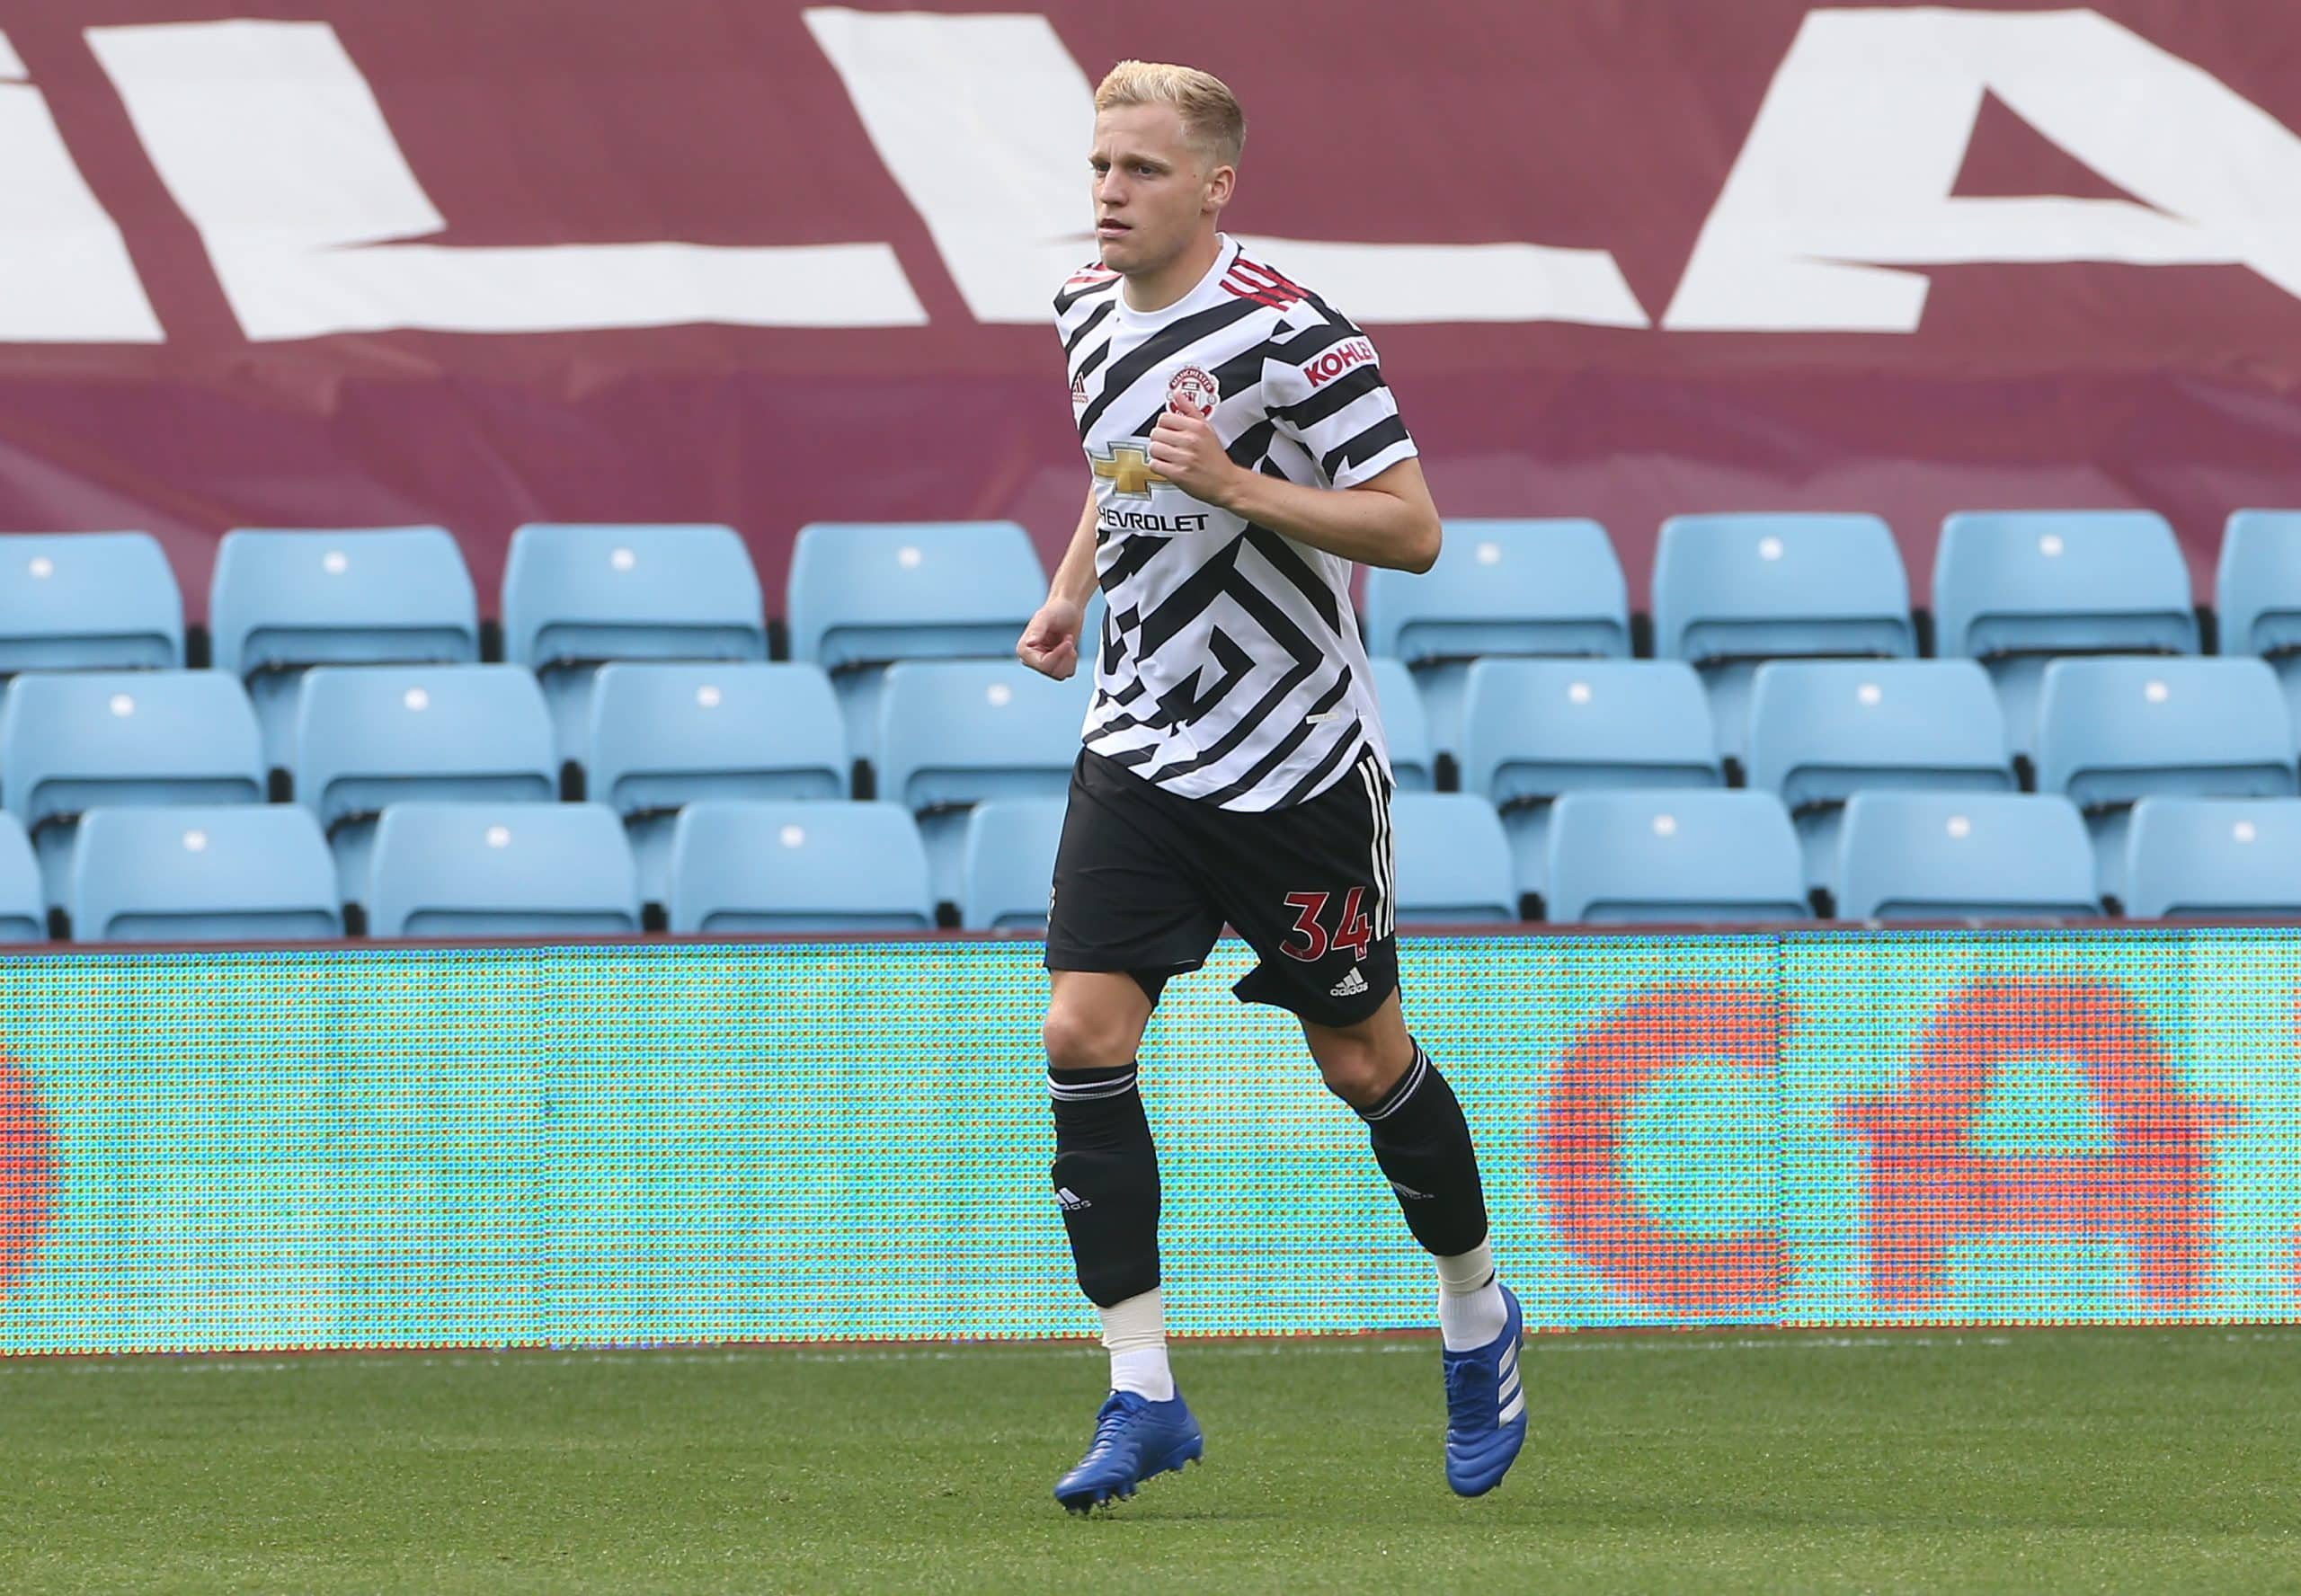 Donny van de Beek's agent hits out at Man United over Dutchman's role: 'A substitute; I don't like it at all' - 101 great goals